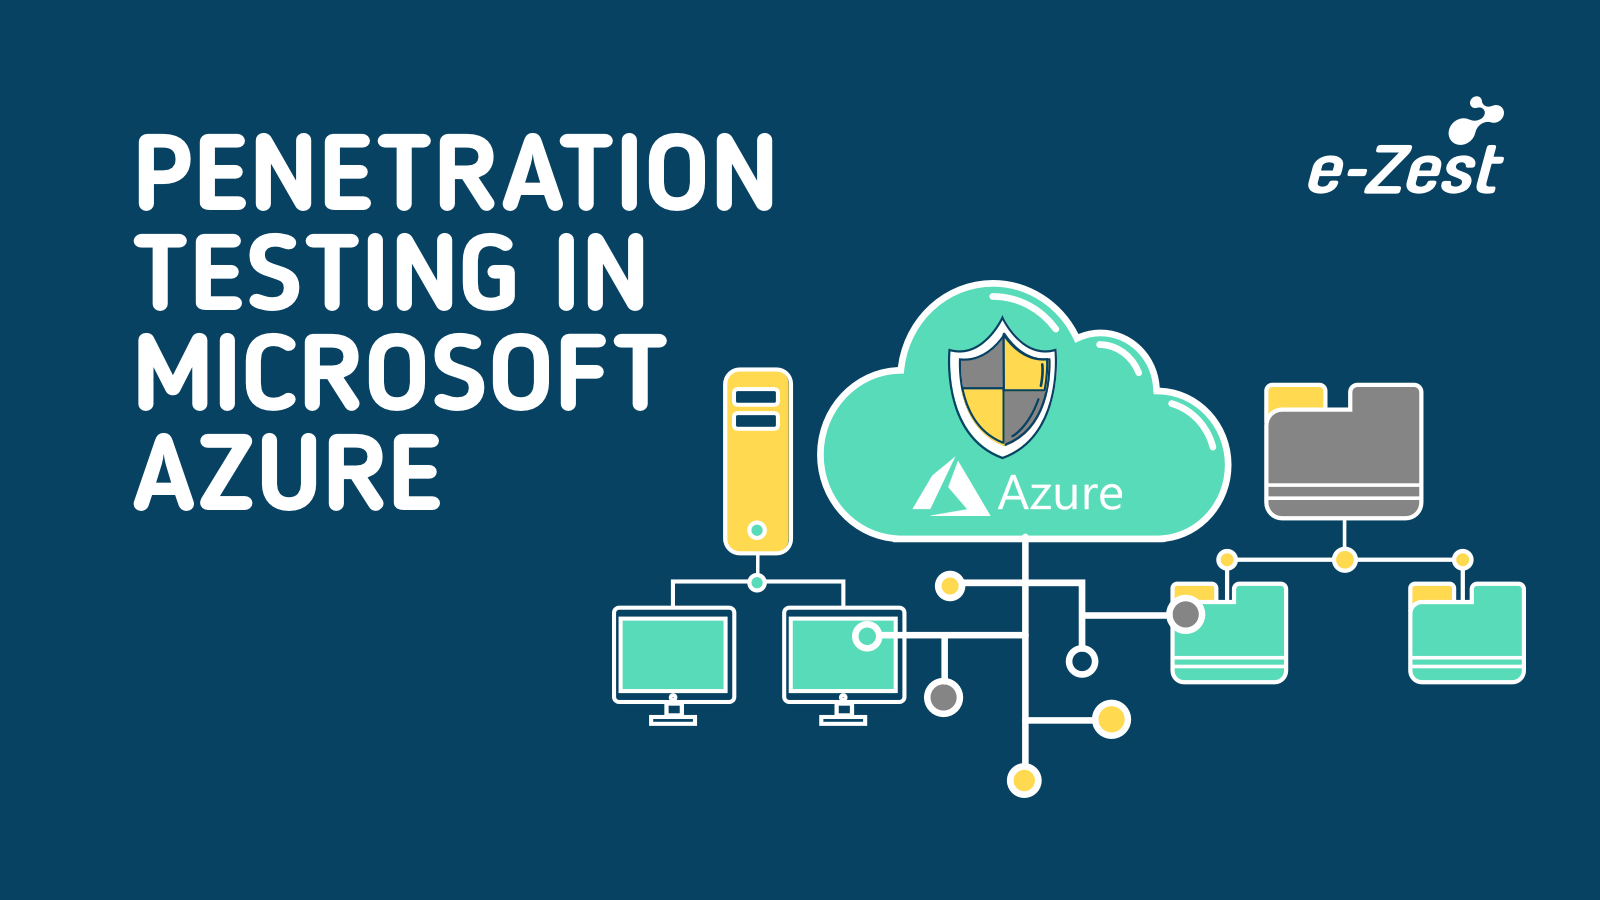 Penetration Testing in Microsoft Azure